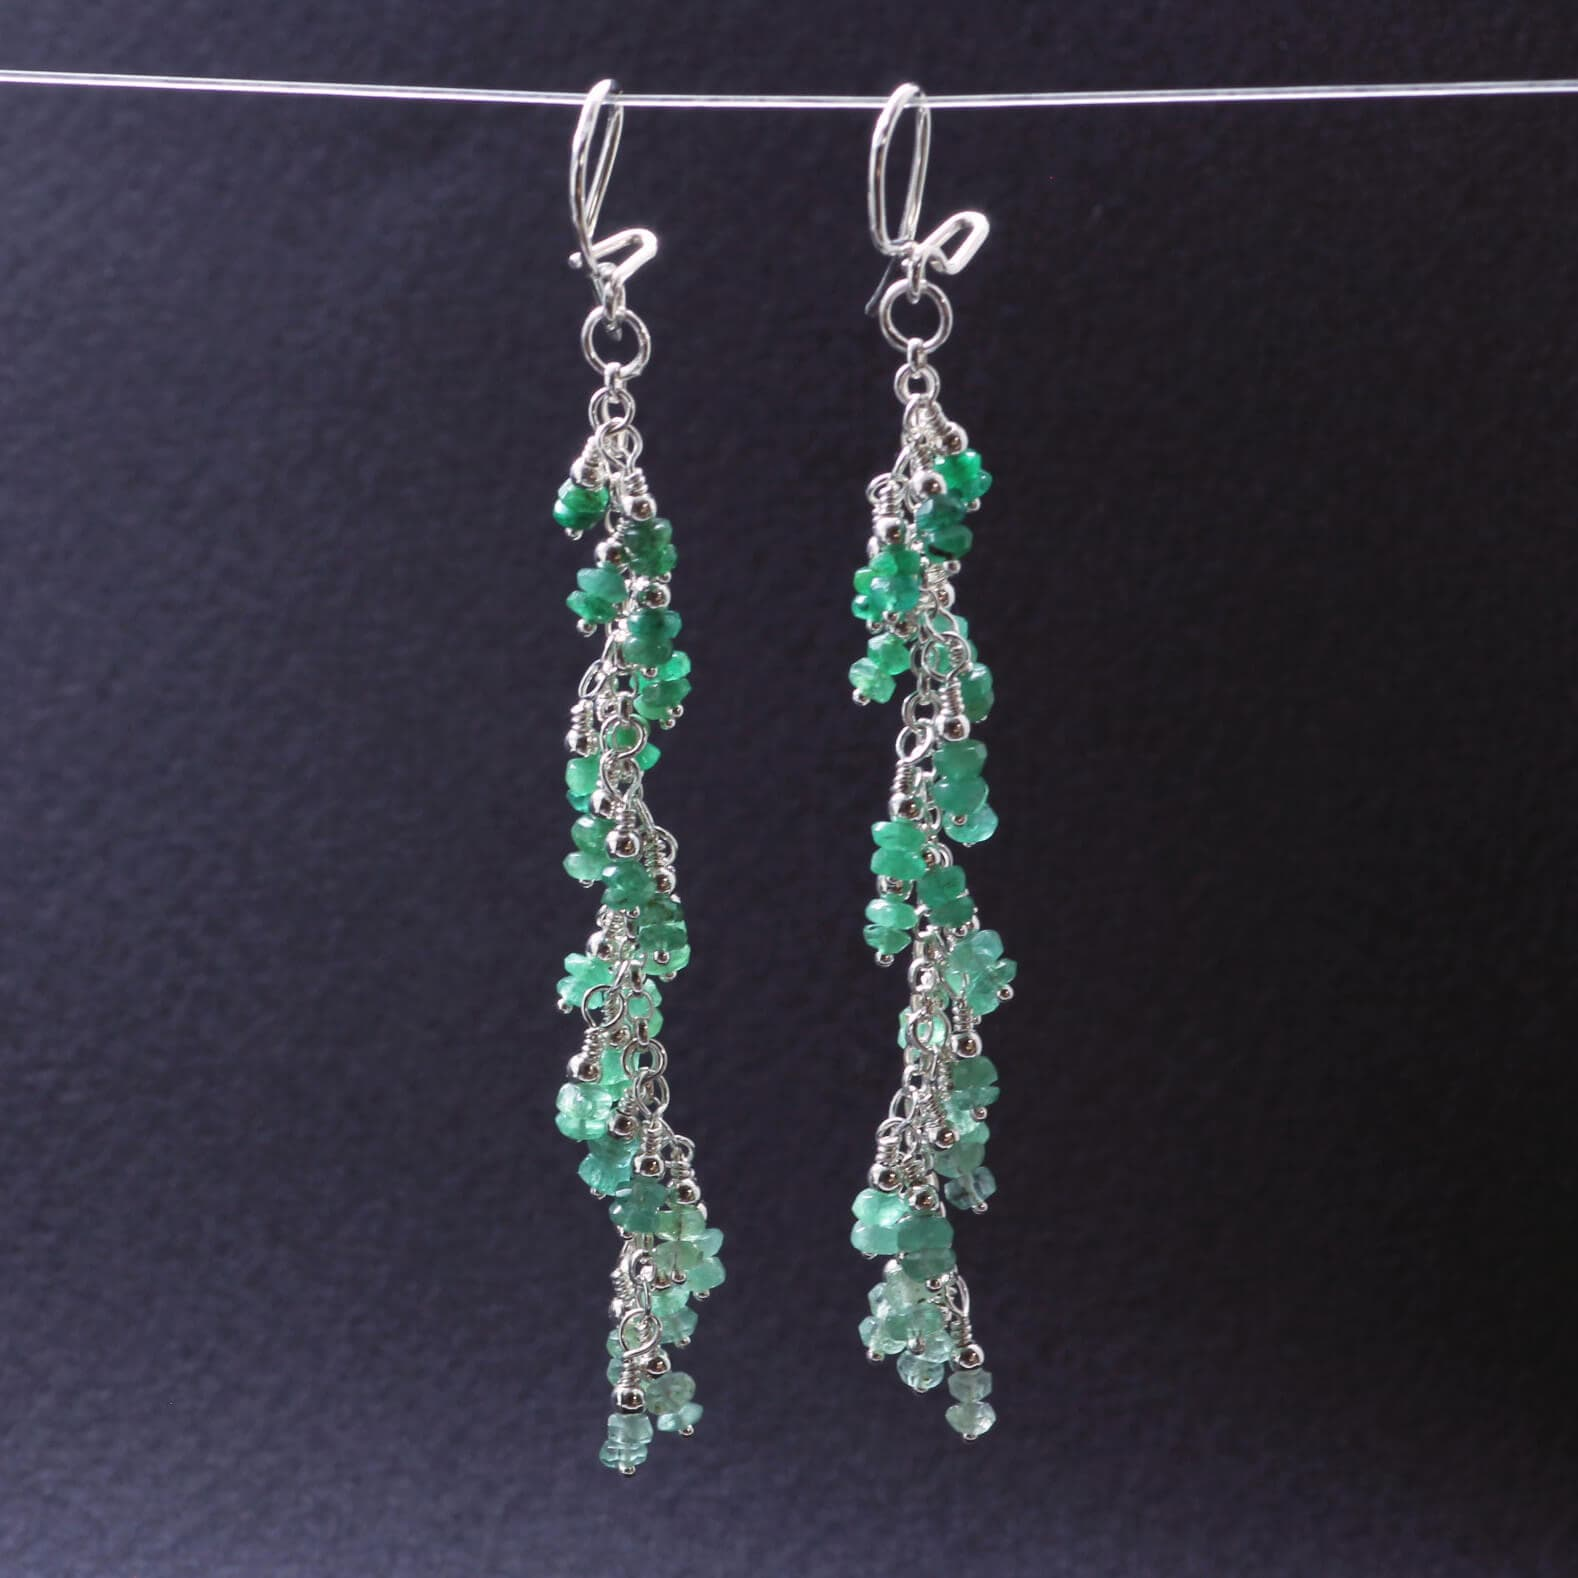 Emerald gemstone Silver earrings, handcrafted by Sophie Saunders.